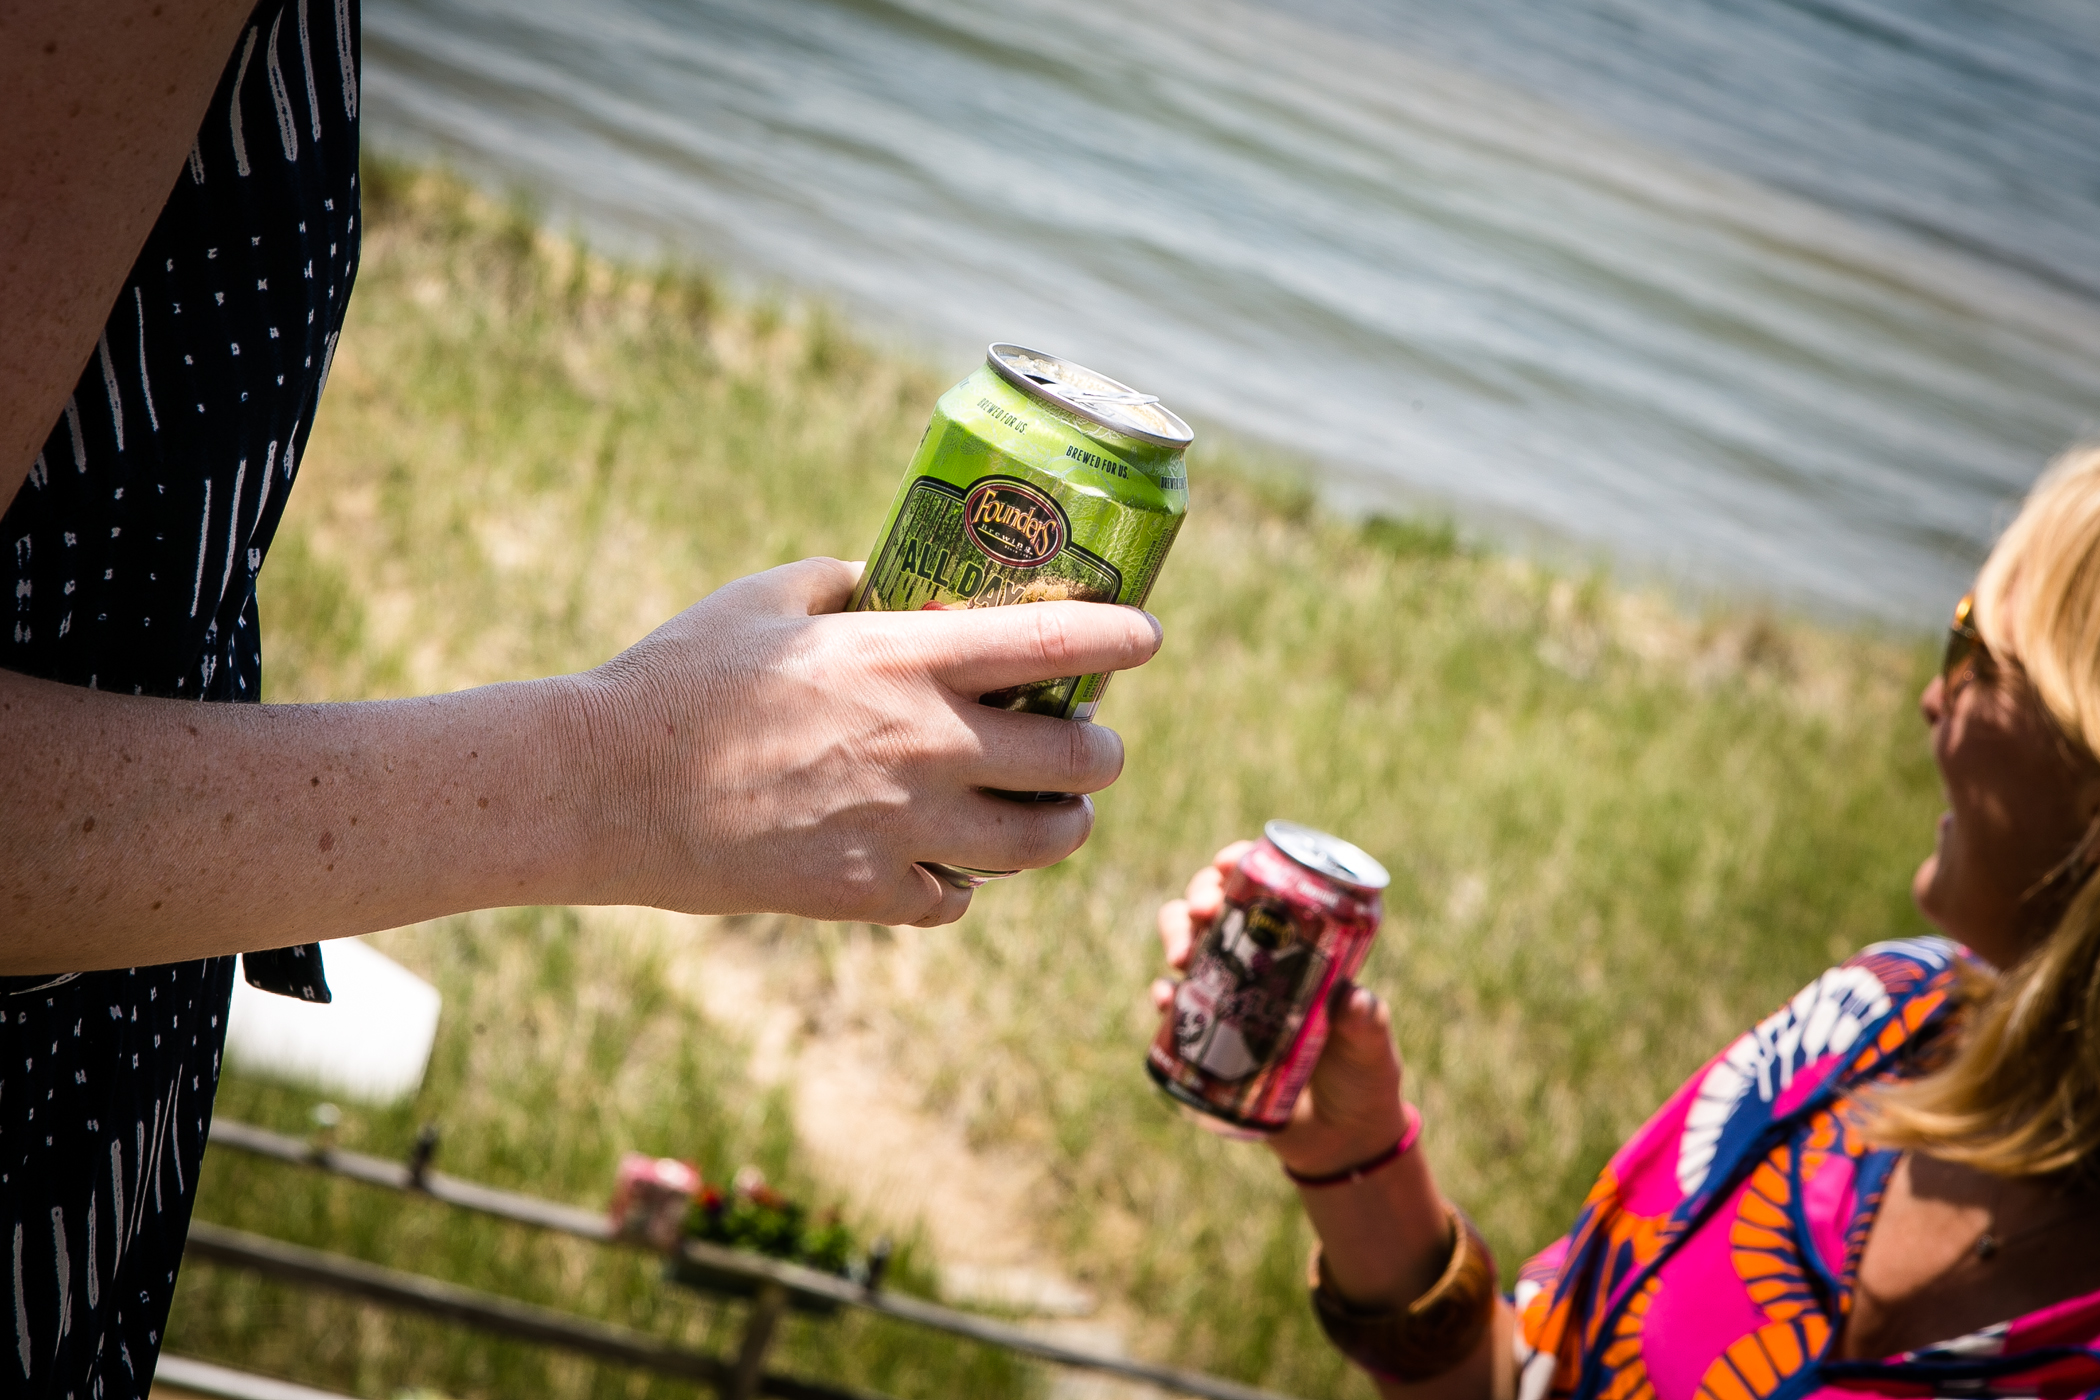 A couple of ladies take the day off to enjoy that summer Michigan weather with an All Day IPA (left) and the newly canned Rubaeus.